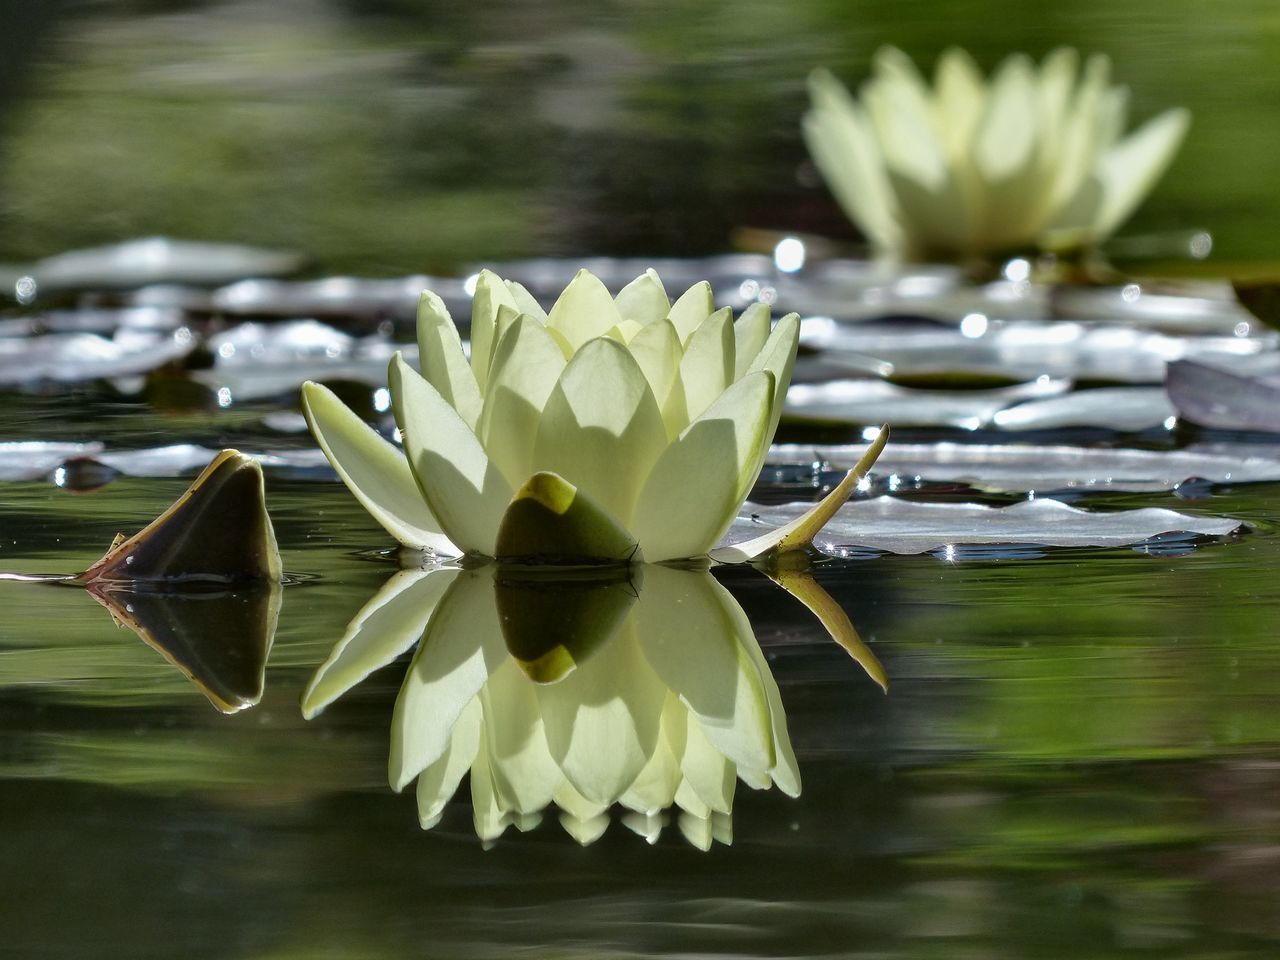 A water lily flowering in the water garden of Preston park, Brighton - August 2015. Brighton East Sussex England Lily Preston Park Reflections Reflections In The Water Vanilla Flower Water Lily Water Reflections